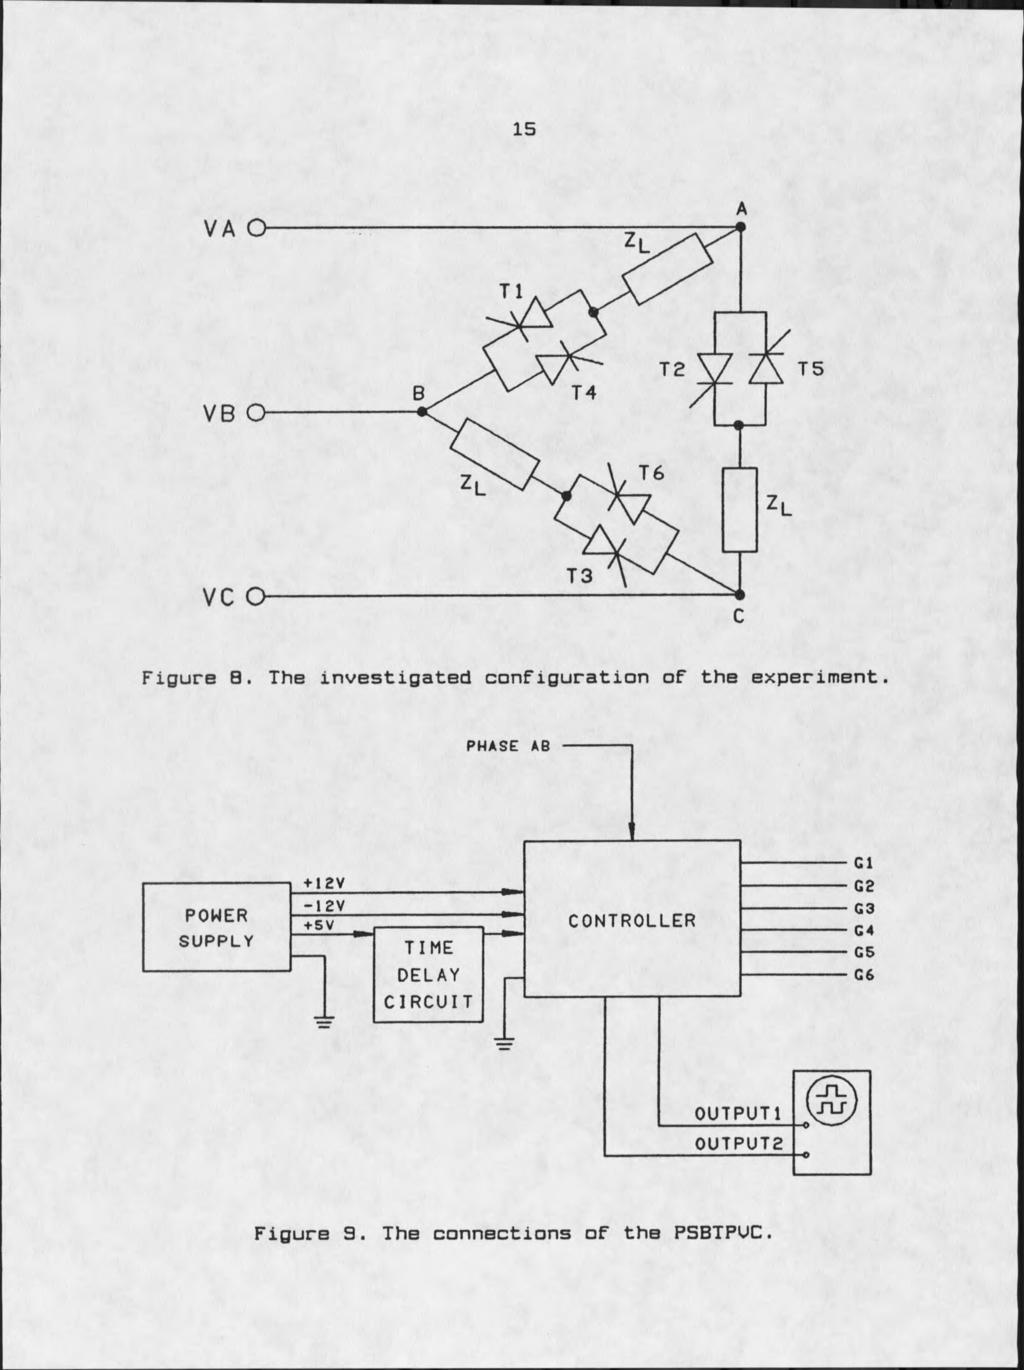 Firing Circuits For Three Phase Power Electronic Pdf Circuitlab Test Lm 317 Voltage Regulator The Investigated Configuration Of Experiment